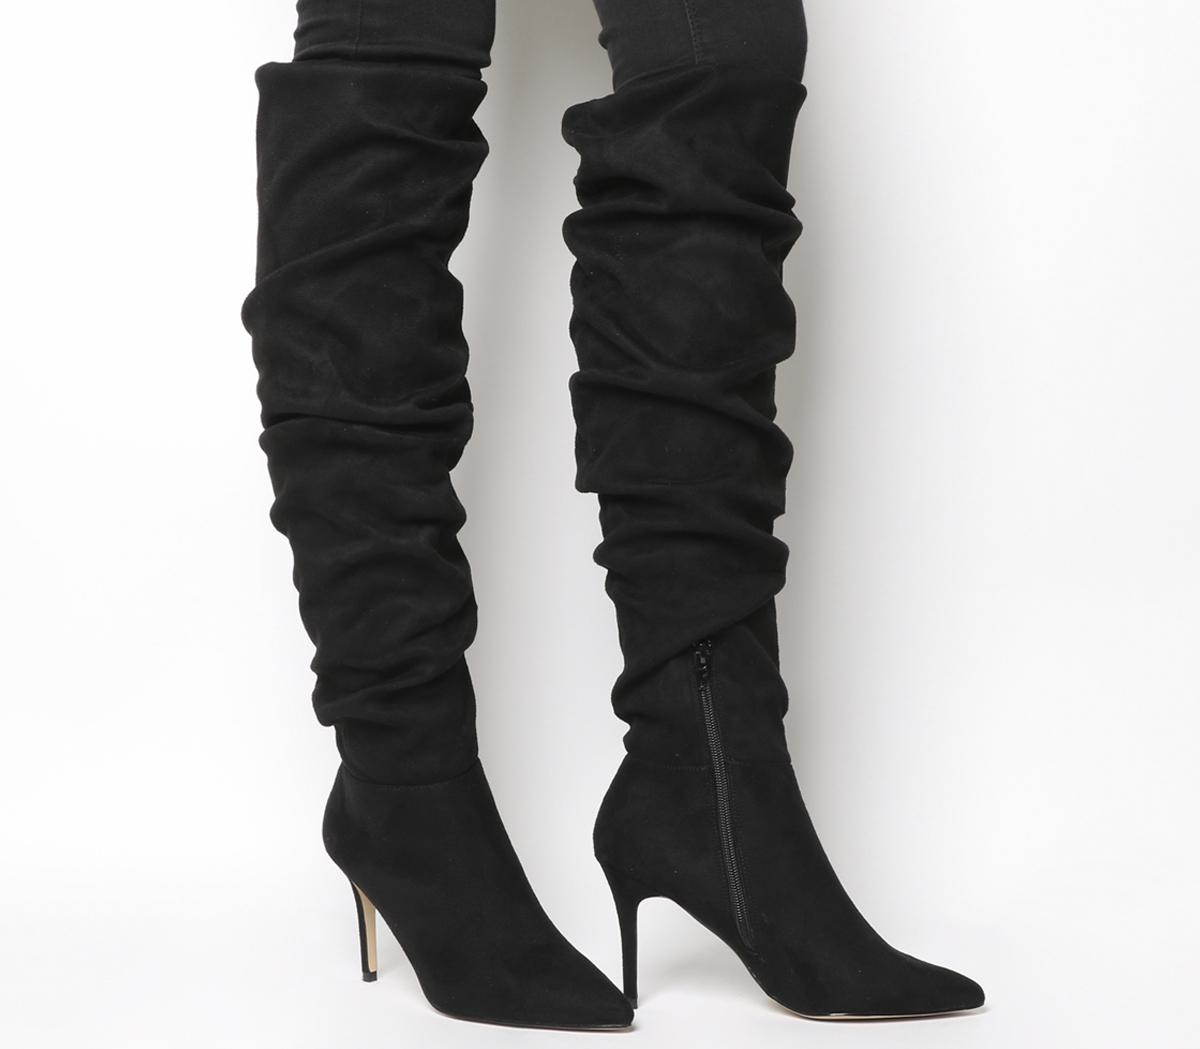 Kisses Dressy Ruched Stiletto Boots